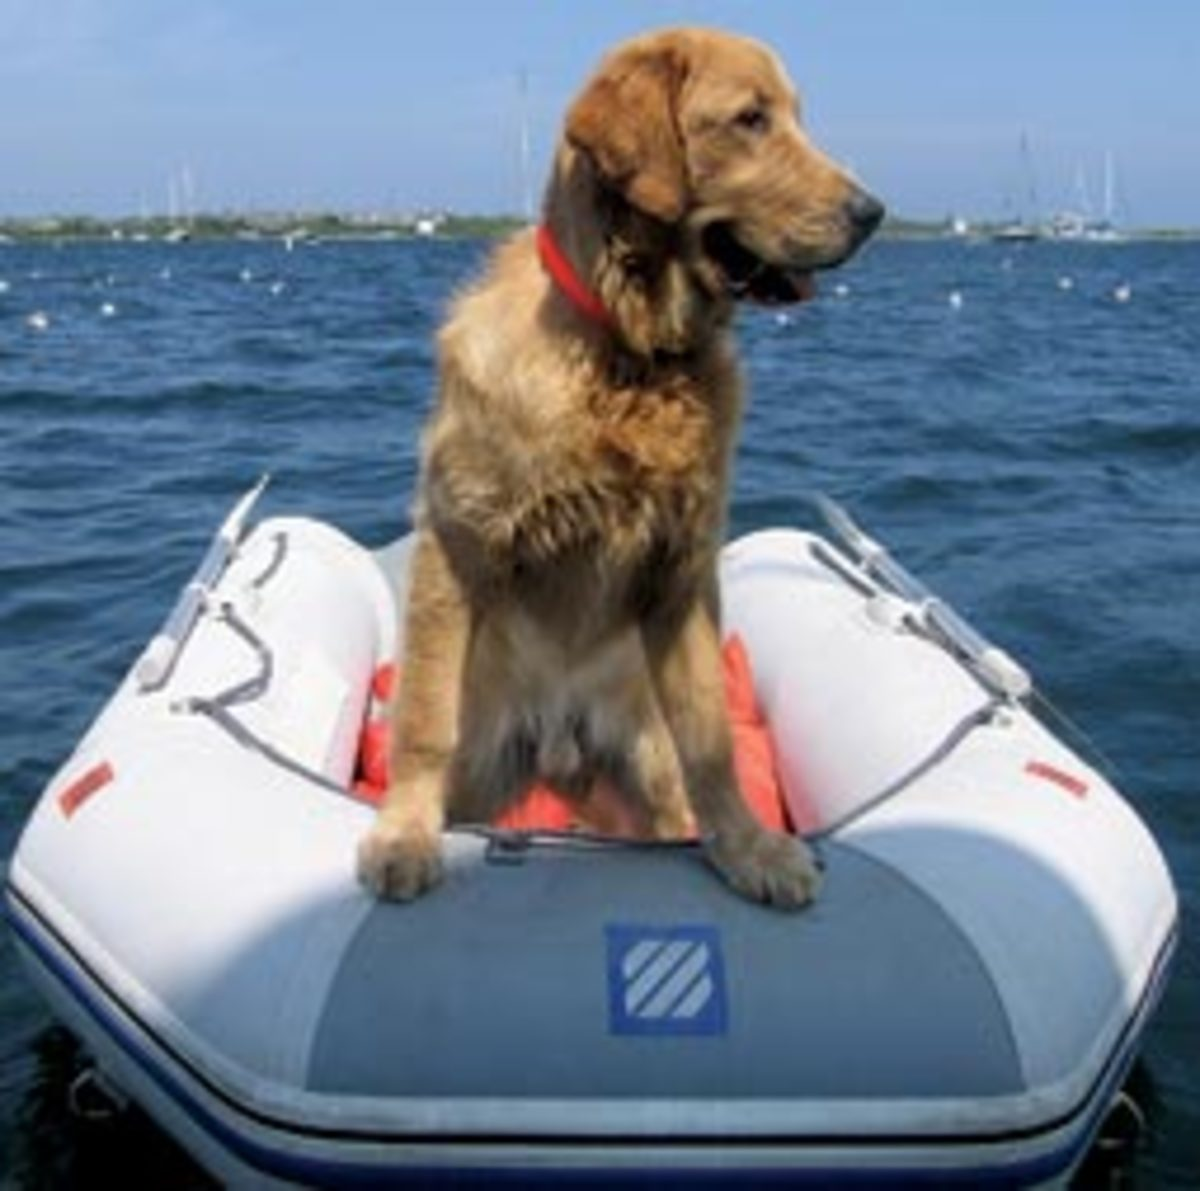 When not in the dinghy looking for birds, year-old golden retriever Duke can be found shark fishing aboard Amy Lynn Clark's 1987 Post 46 sportfisherman, Salty Paws, which inspired the name for our contest.